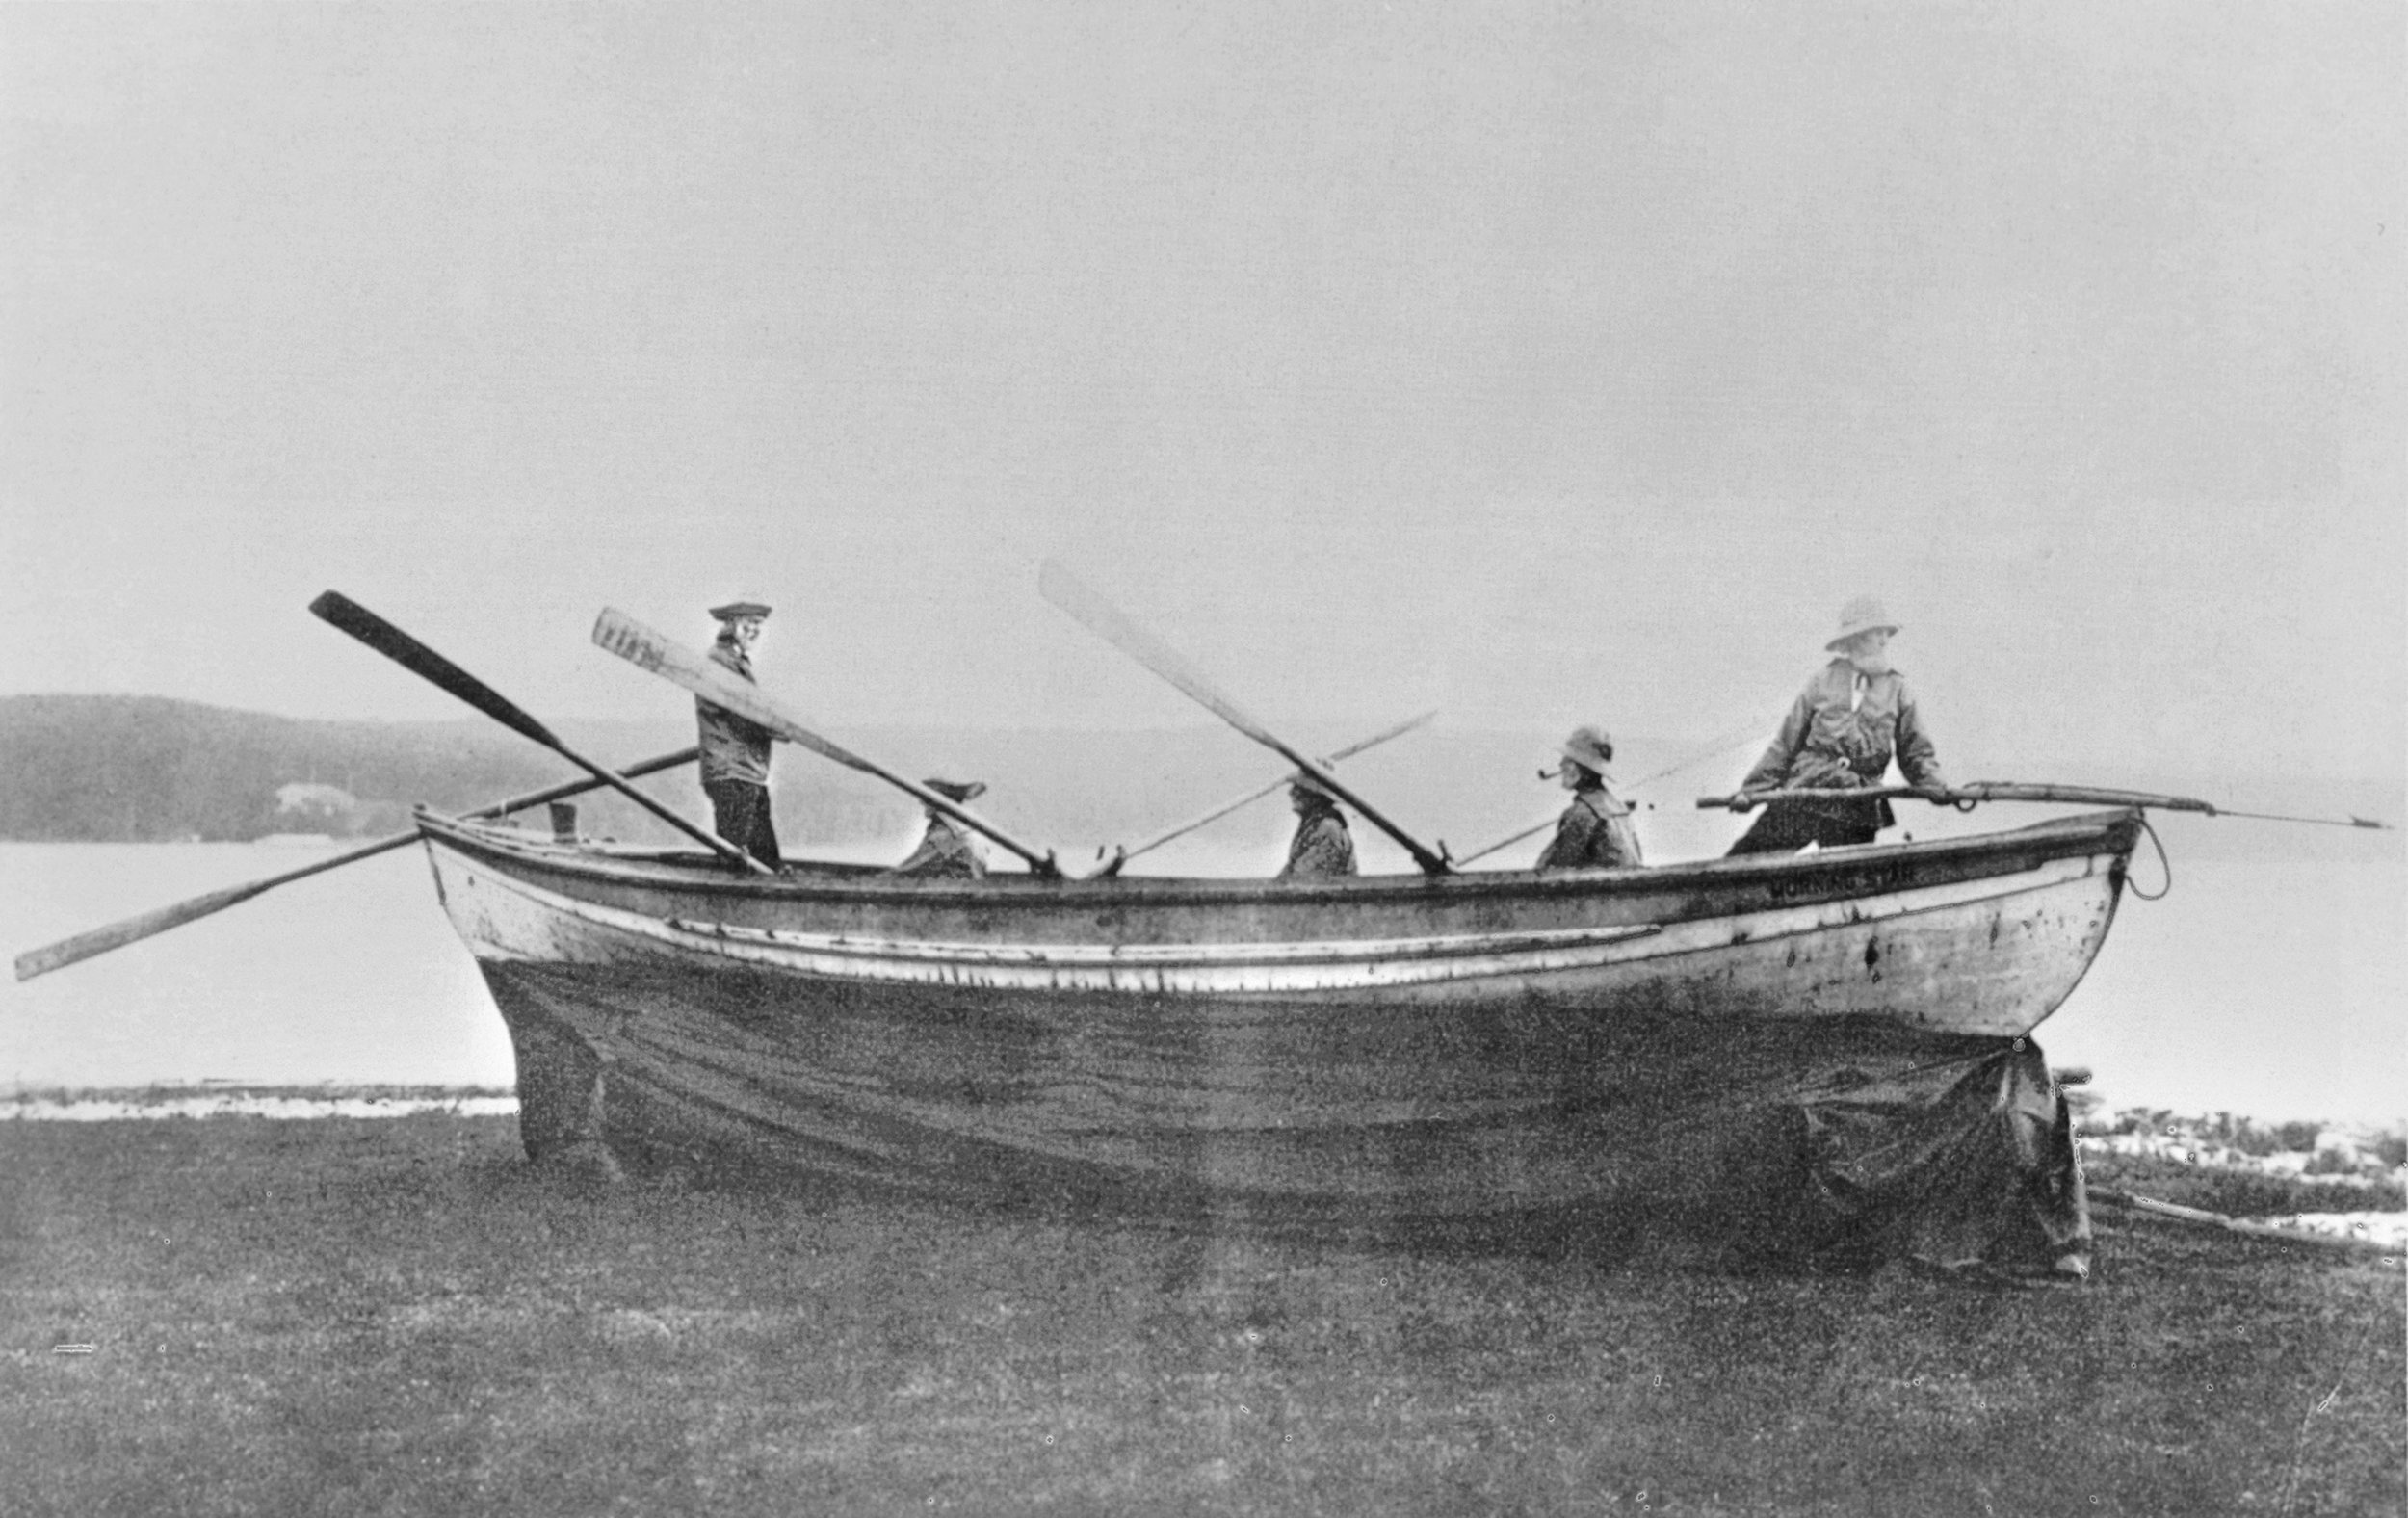 SURVIVING COLD SPRING HARBOR WHALEMEN, 1906 (left to right) George Barrett, the author's great grandfather, George Mahan, Harvey Gardiner, John Douglas, John Waters